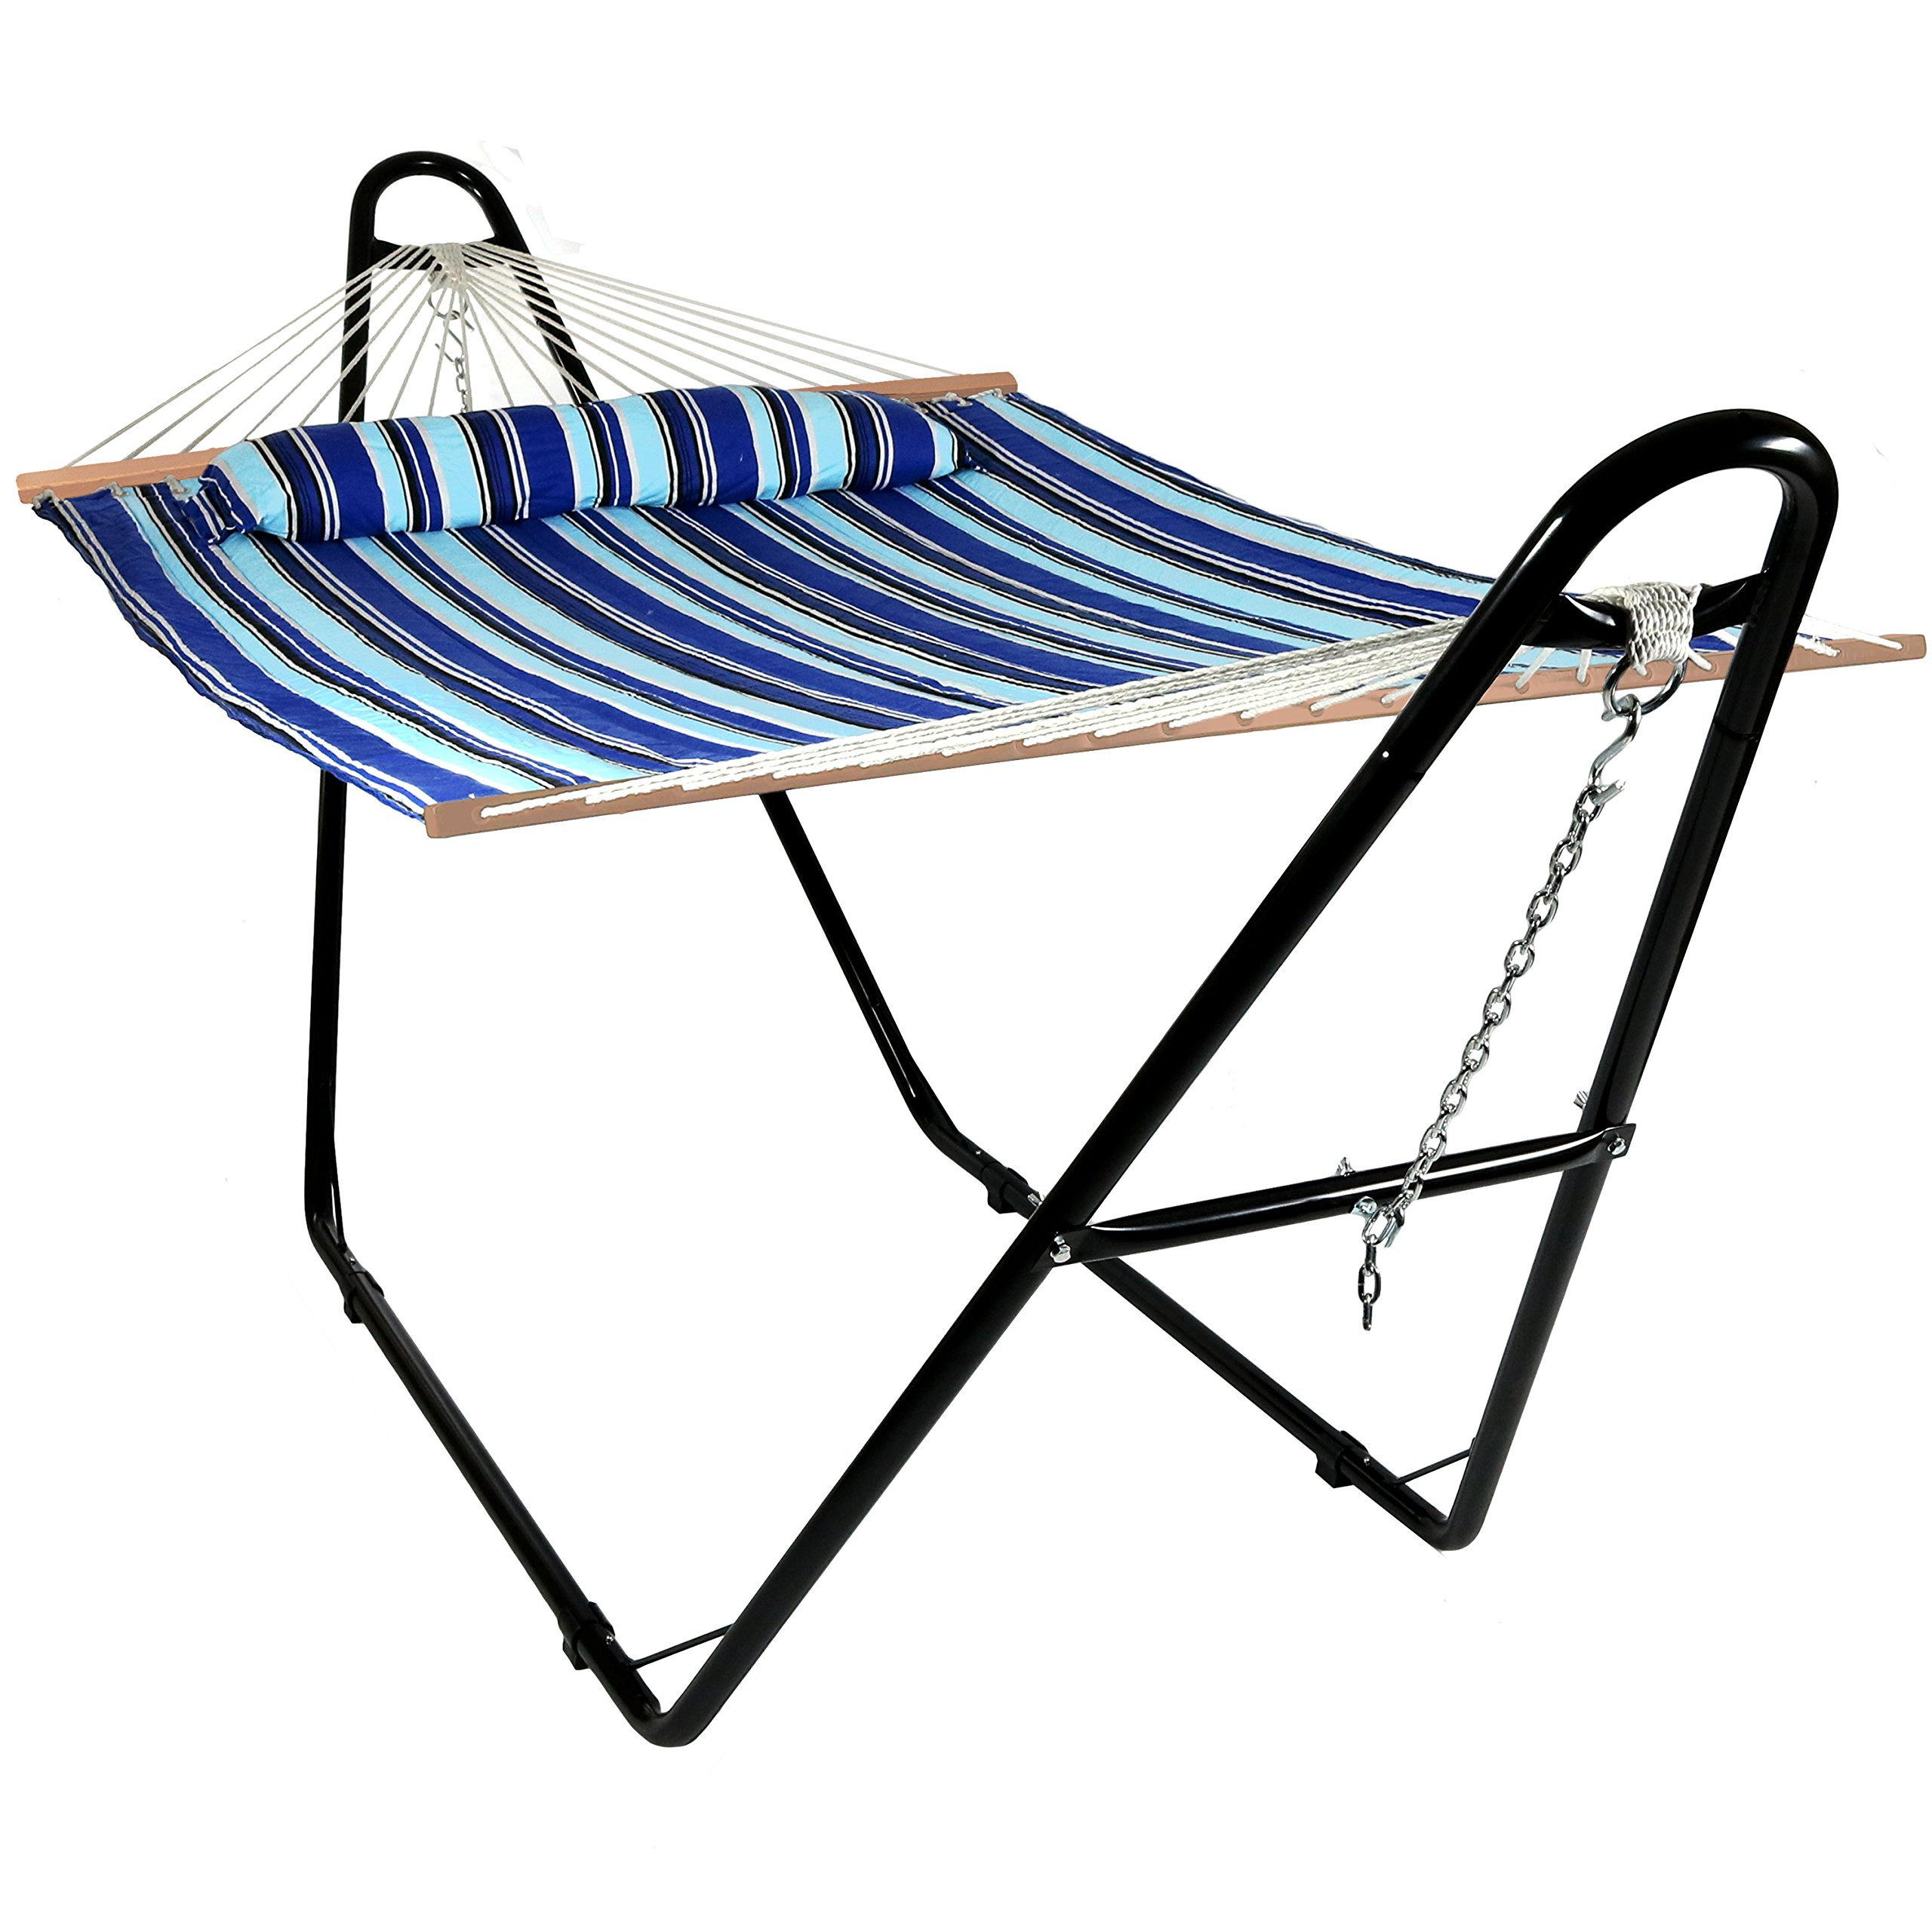 Sunnydaze Double Quilted Fabric Hammock with Multi-Use Universal Steel Stand, Catalina Beach Striped, 2-Person, 450 Pound Capacity